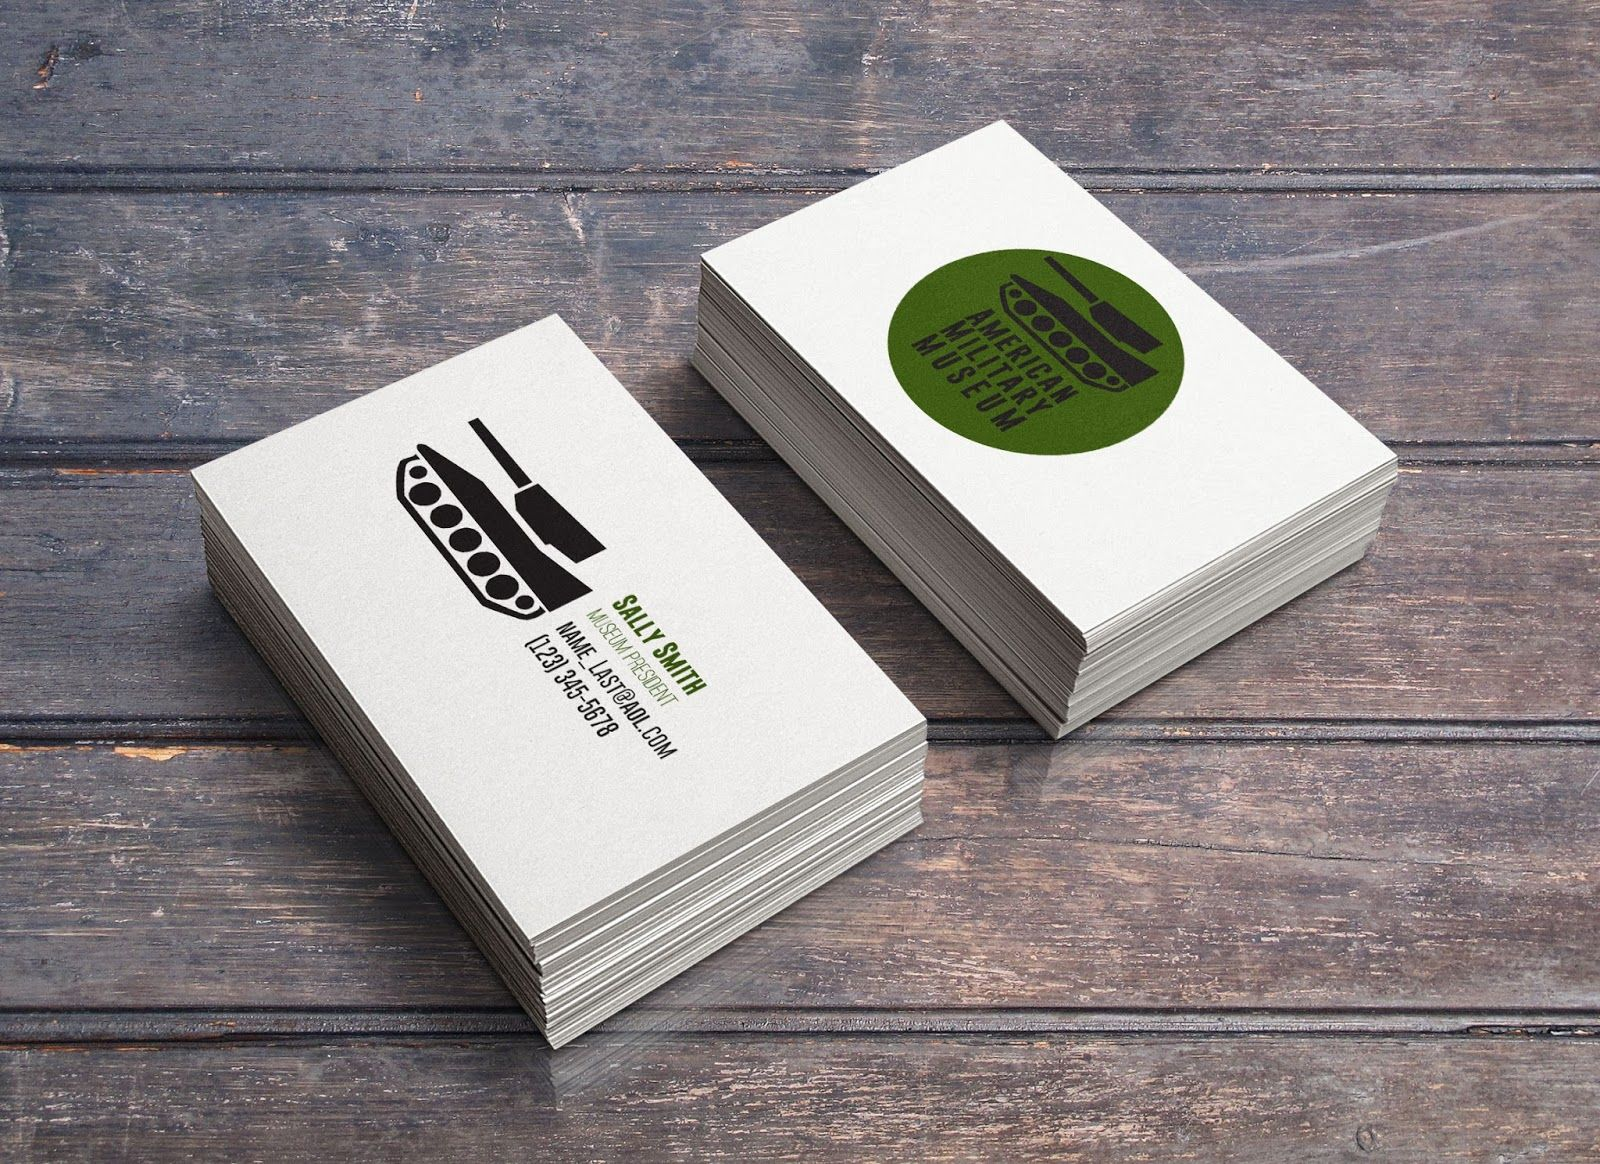 Military Business Cards - Business Card Tips | Concepts | Pinterest ...